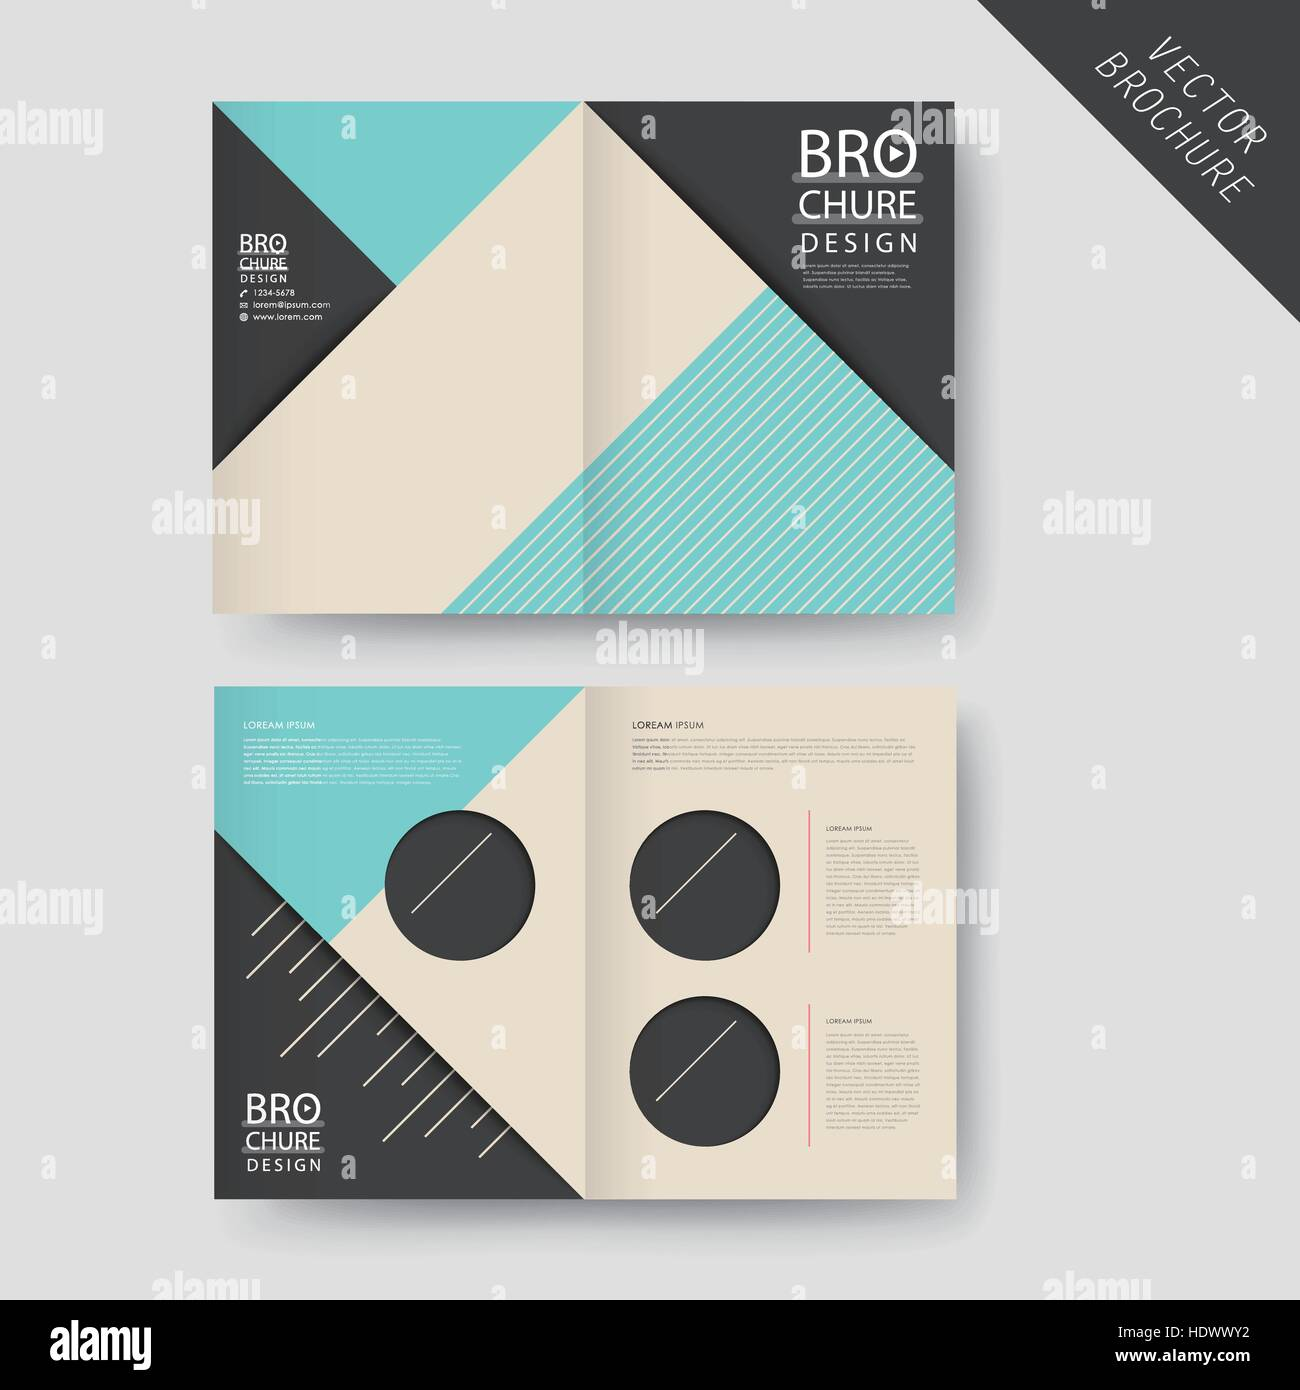 Modern Geometric Halffold Brochure Template Design Over Grey Stock - Single fold brochure template